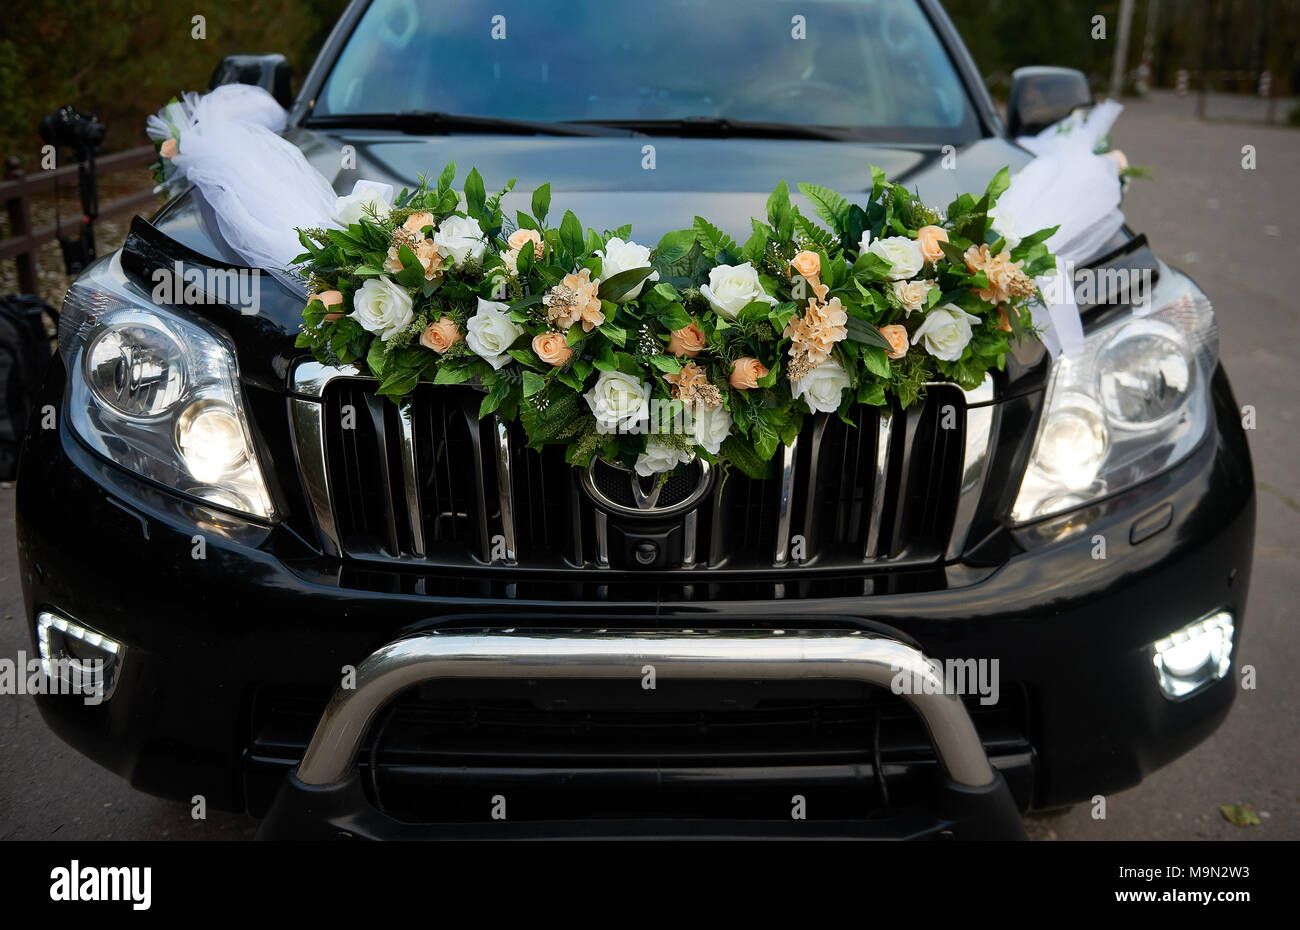 Wedding decoration on wedding car stock photo 178098847 alamy wedding decoration on wedding car junglespirit Image collections